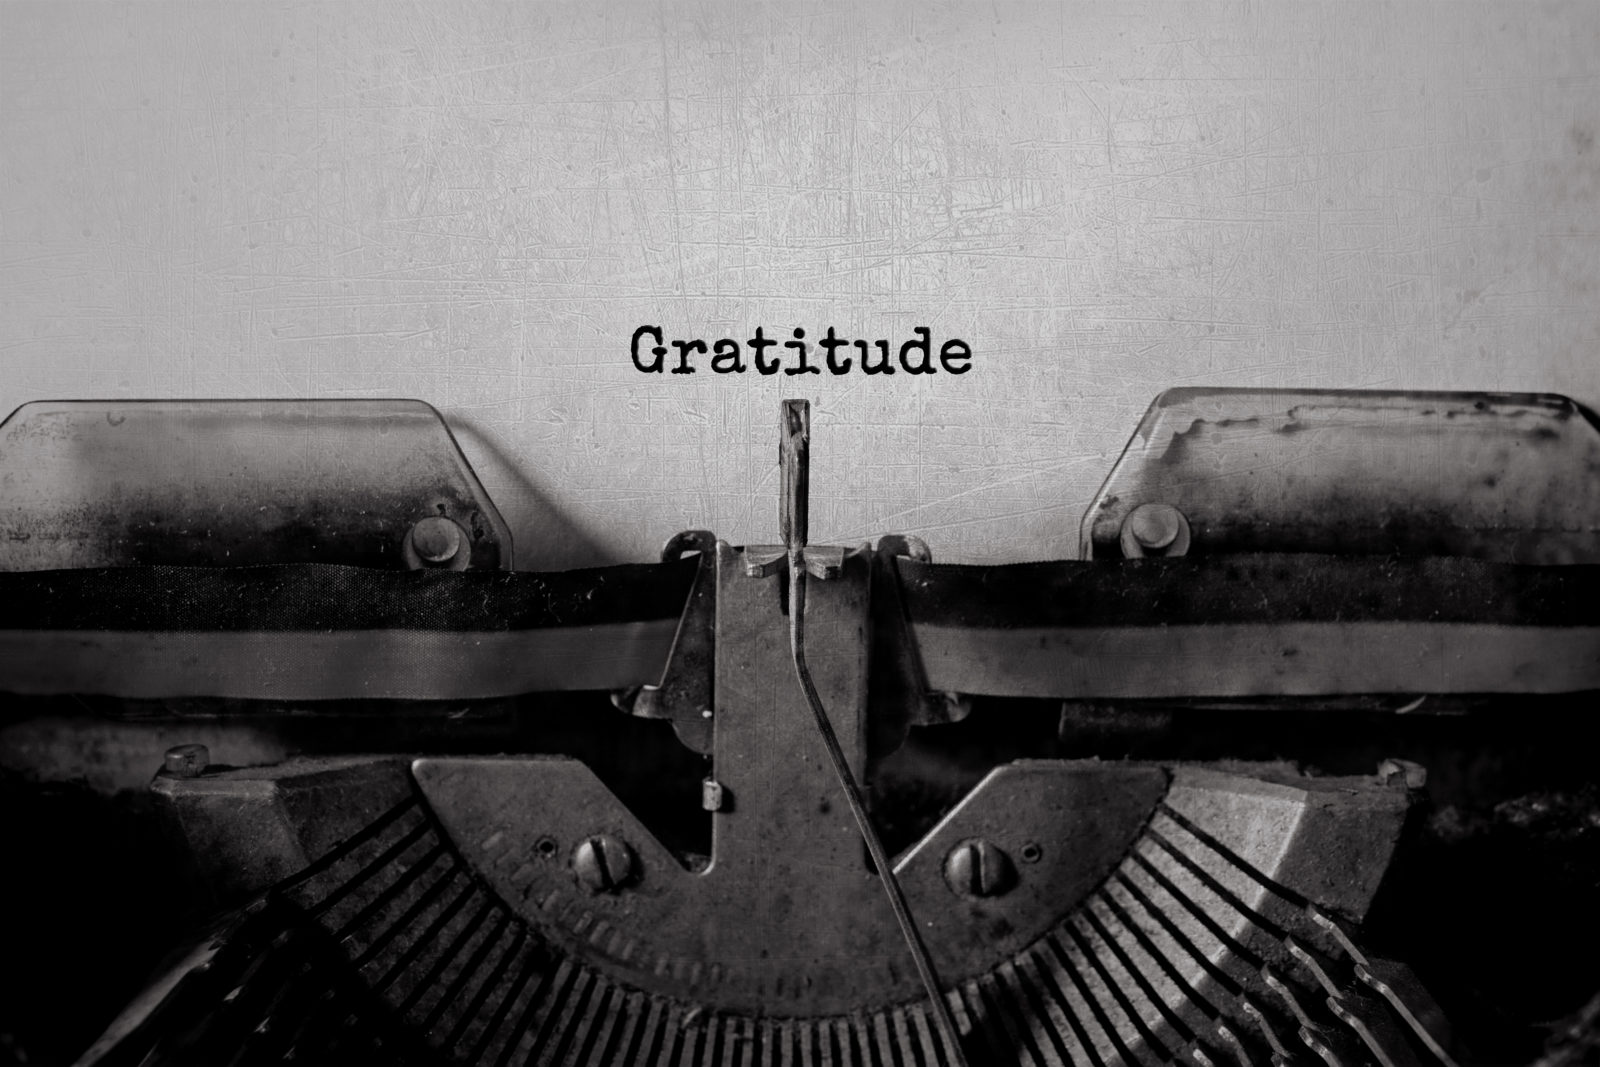 Cultivating Gratitude While Facing Chronic Pain